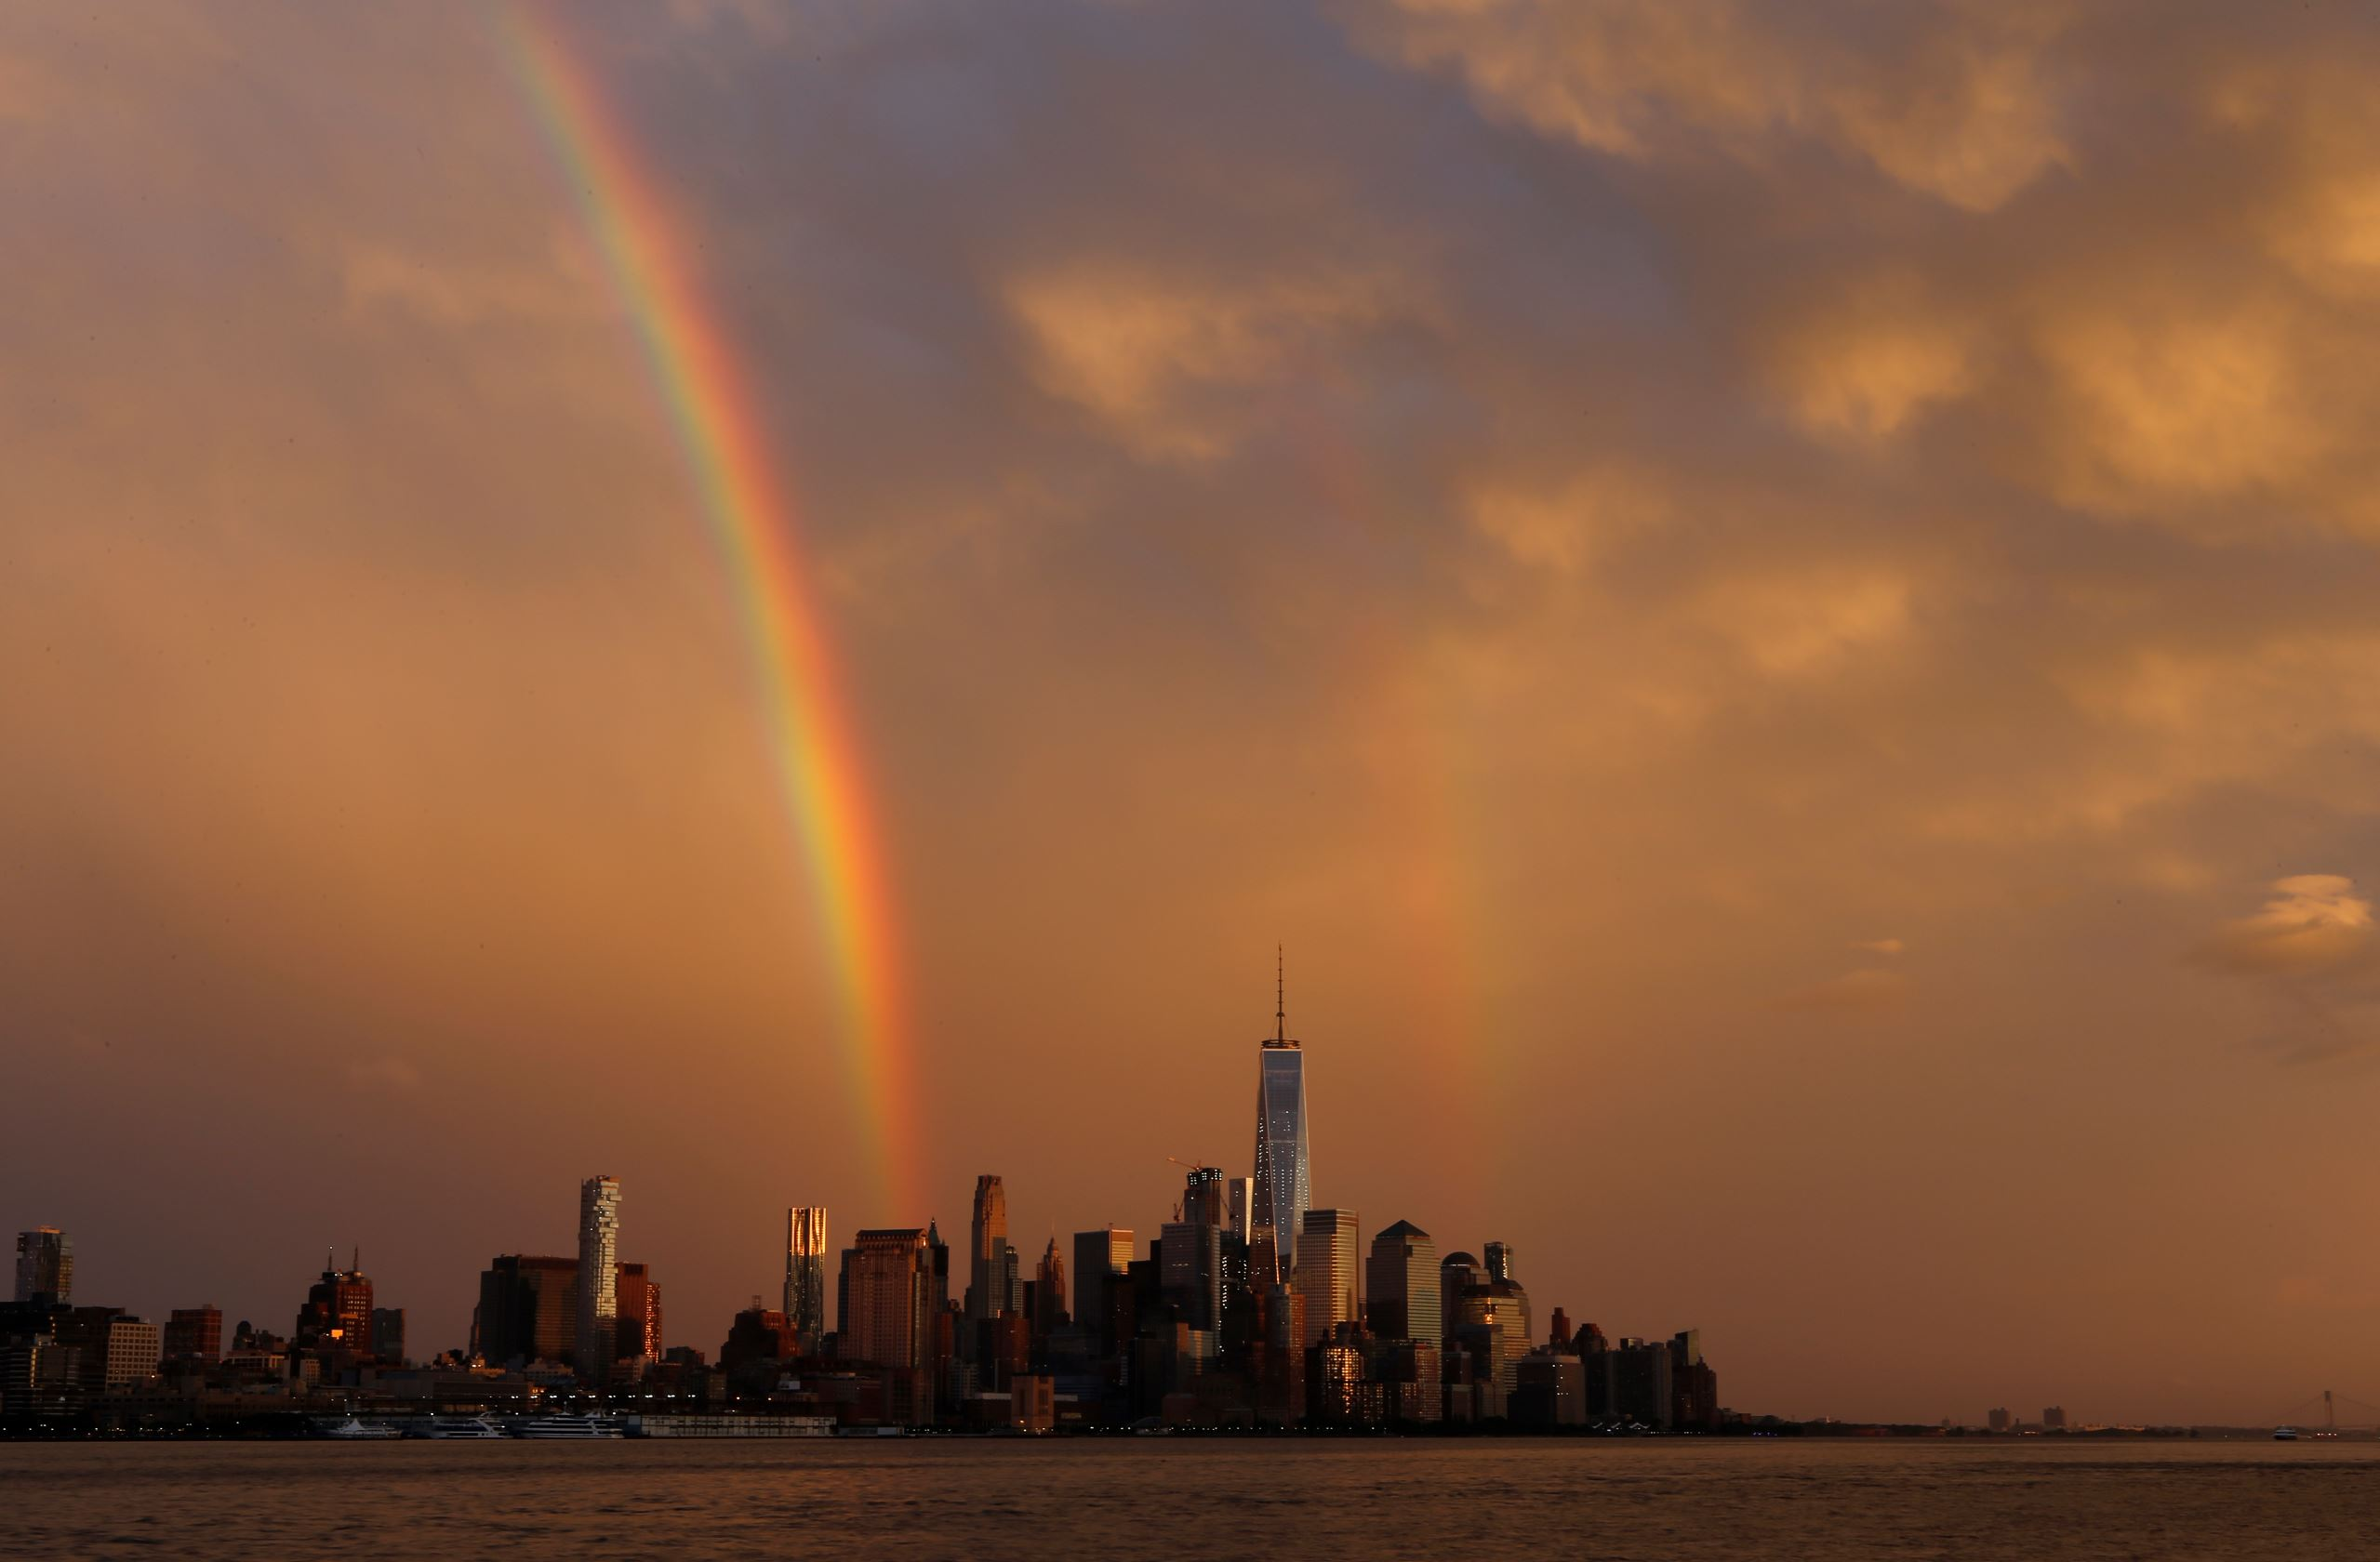 Слайд 52 из 86: NEW YORK, NY - June 5: Double rainbows appear at sunset over Lower Manhattan following a rain storm on June 5, 2016 in New York City. (Photo by Gary Hershorn/Getty Images)